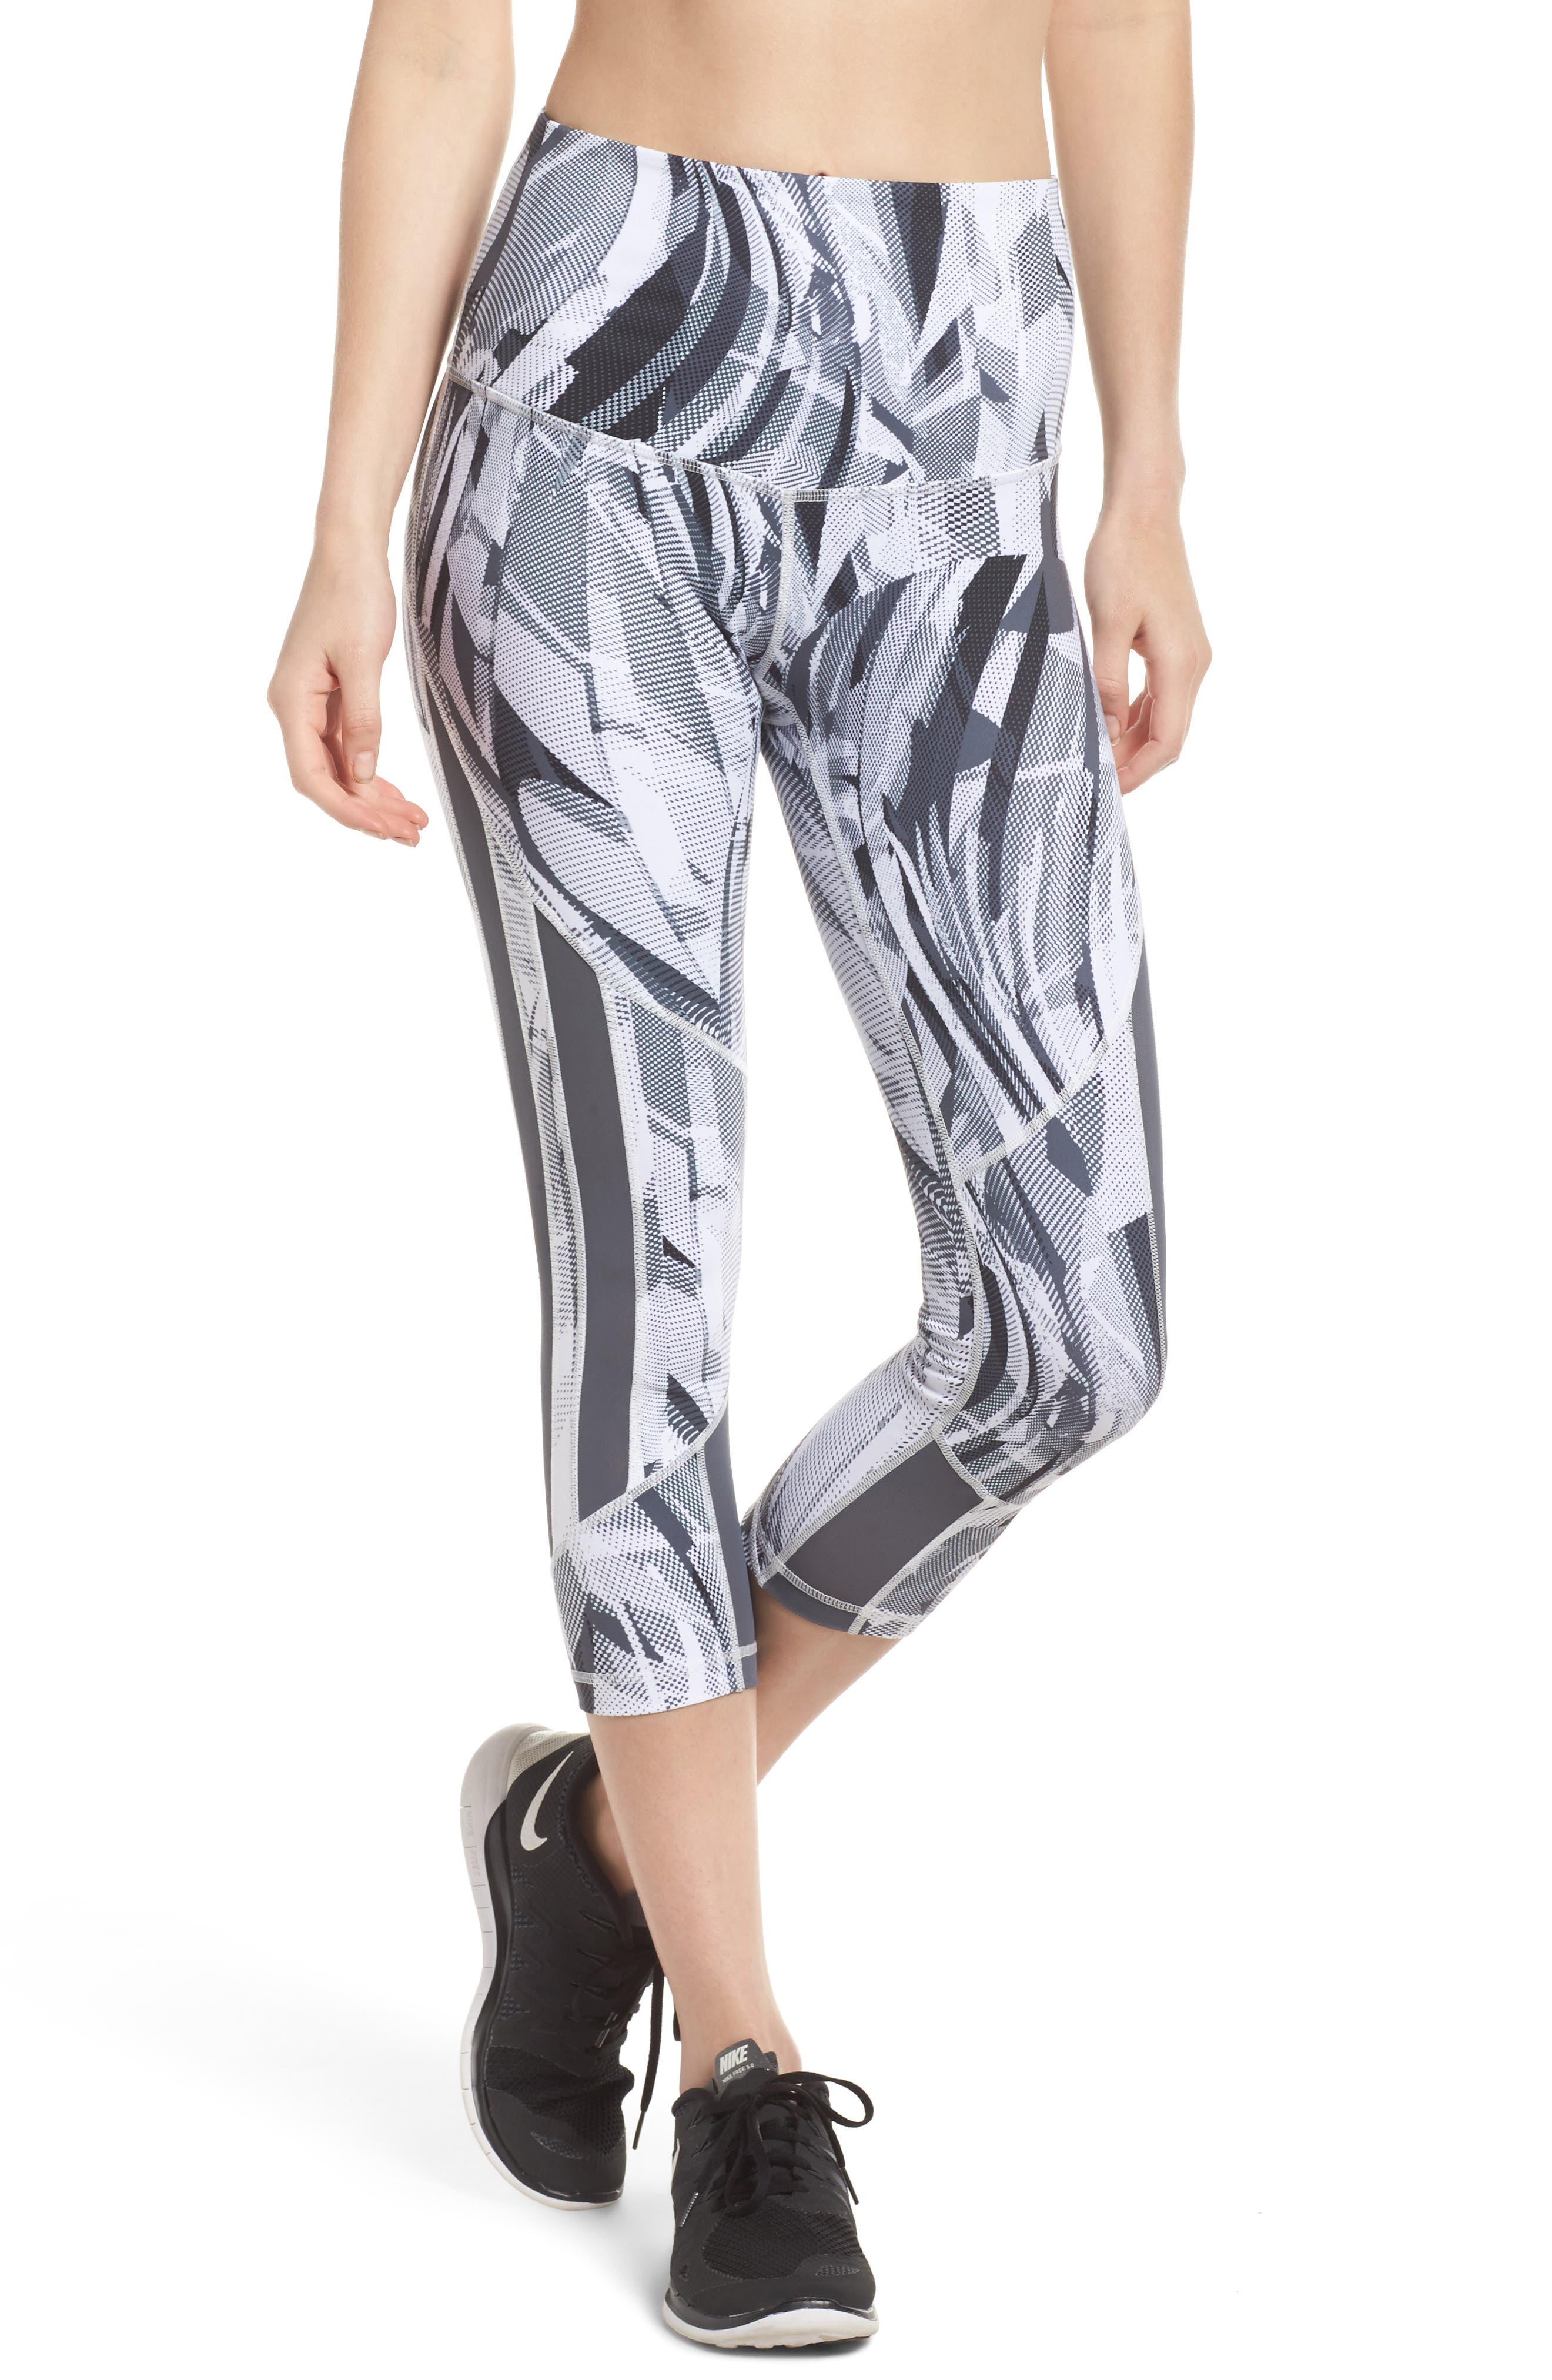 Sheer to There High Waist Crop Leggings,                         Main,                         color, White Atmospheric Camo Print